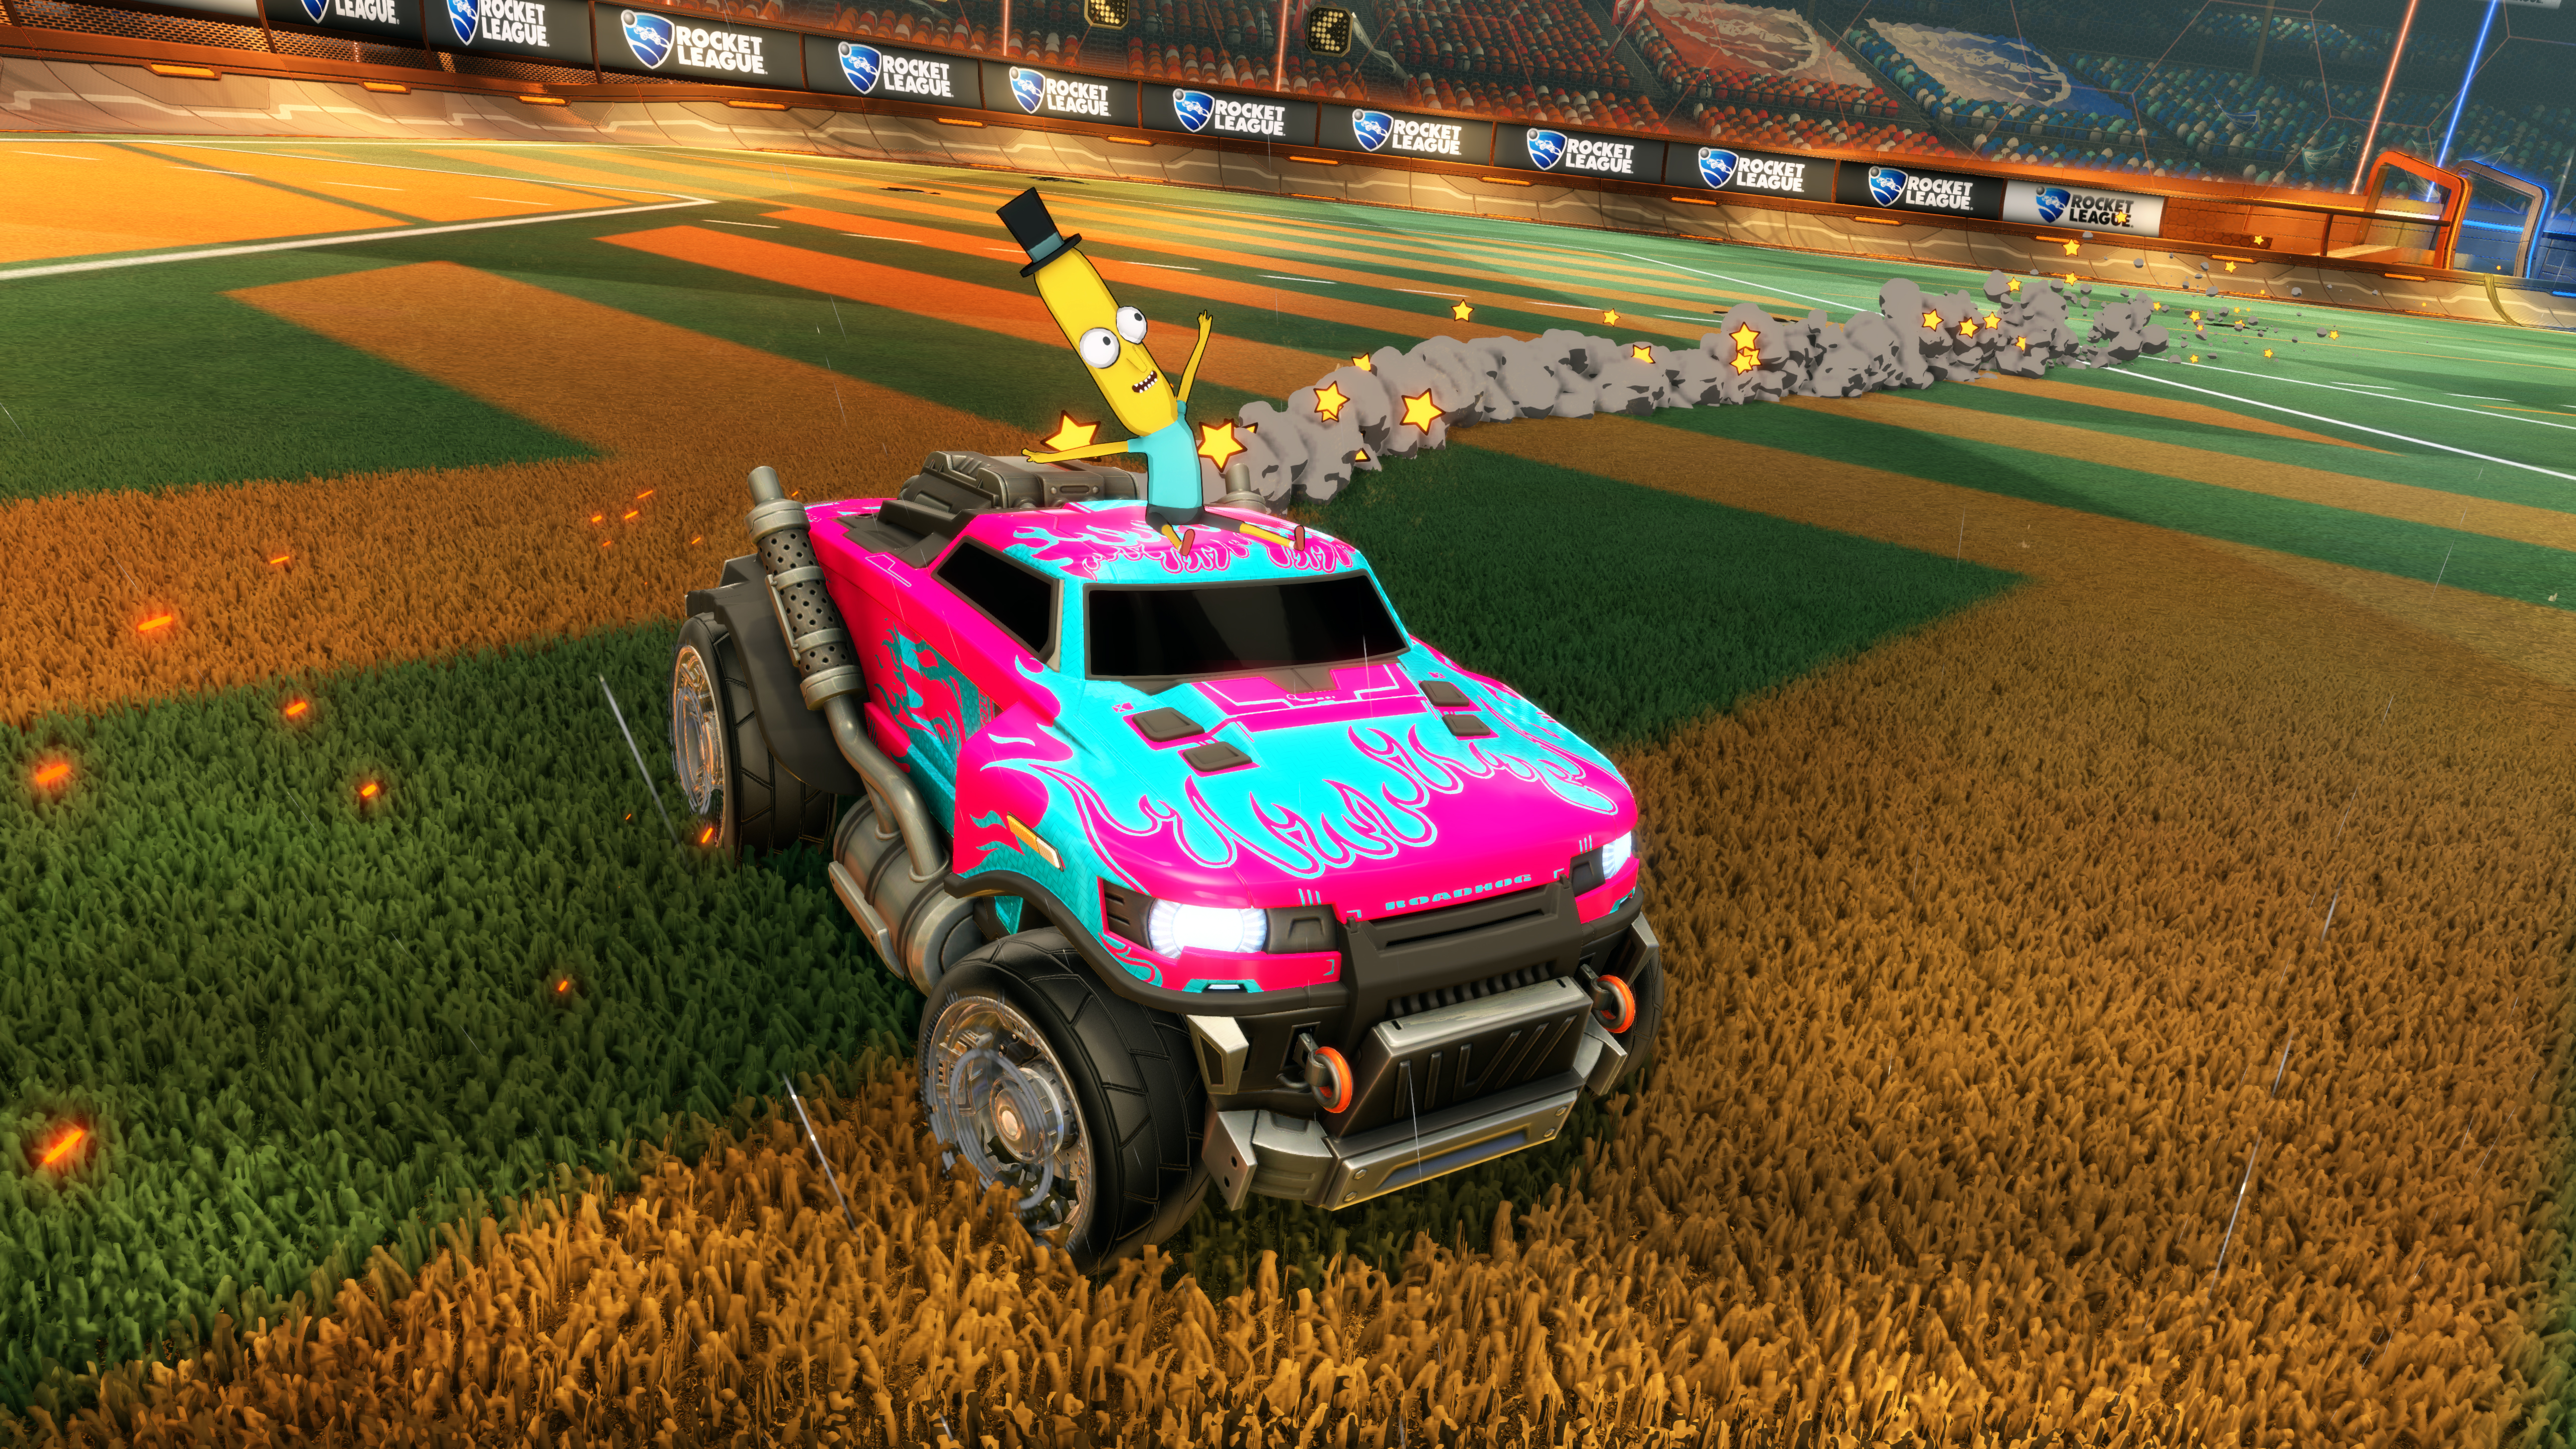 c0a9ddbc85dbd Rick and Morty are taking over Rocket League